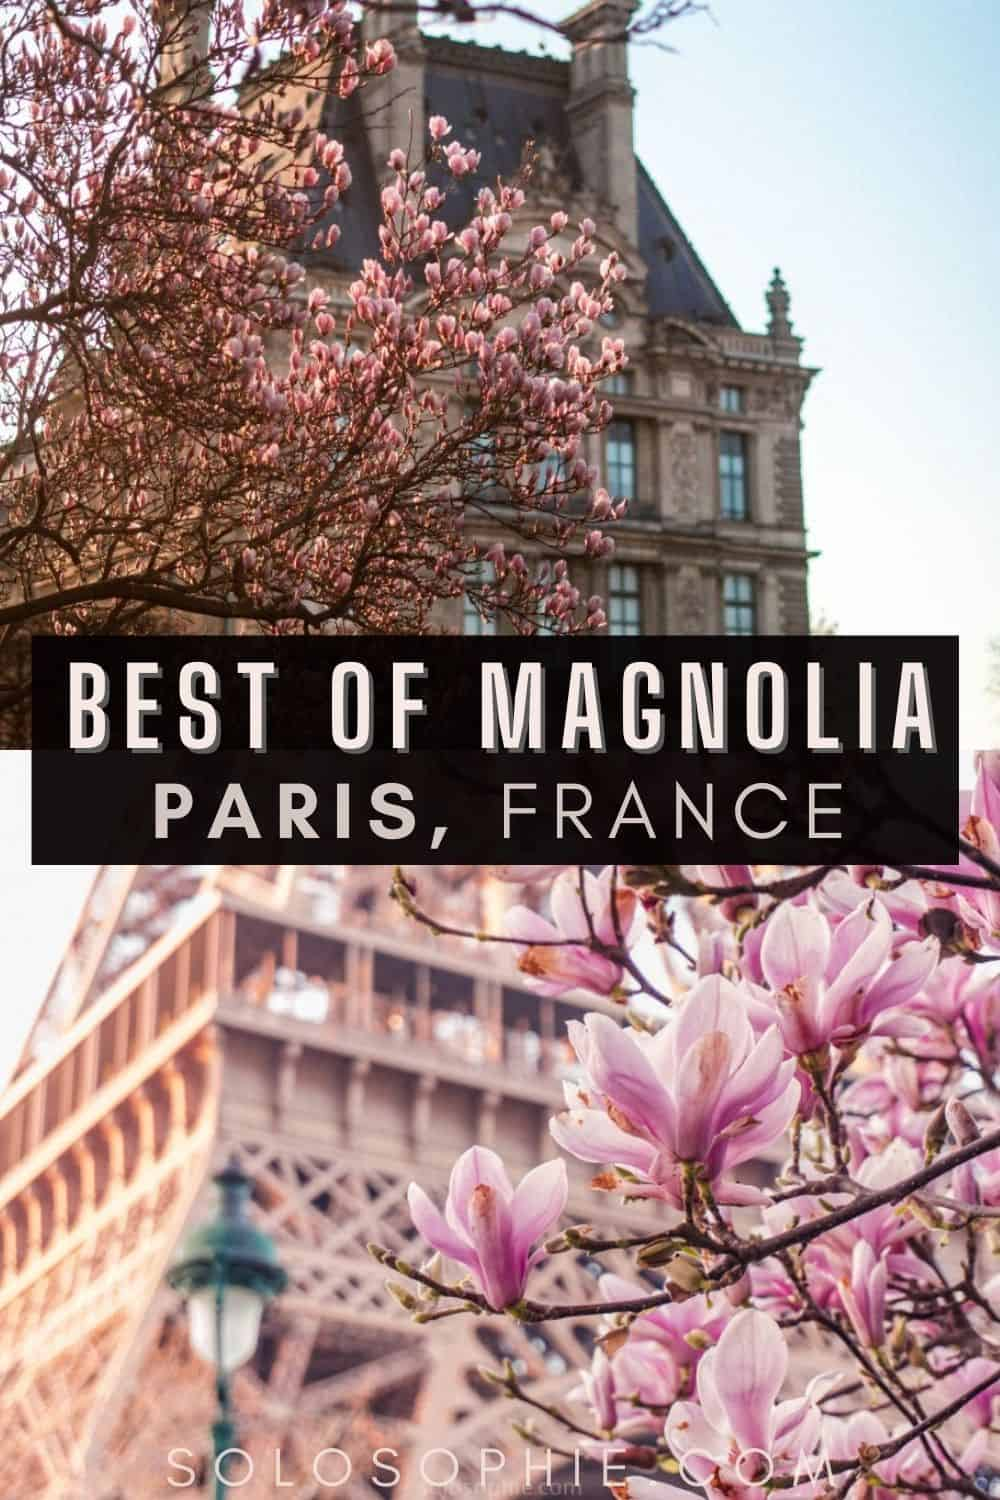 Spring in the City: Where to Find Magnolia Trees in Paris